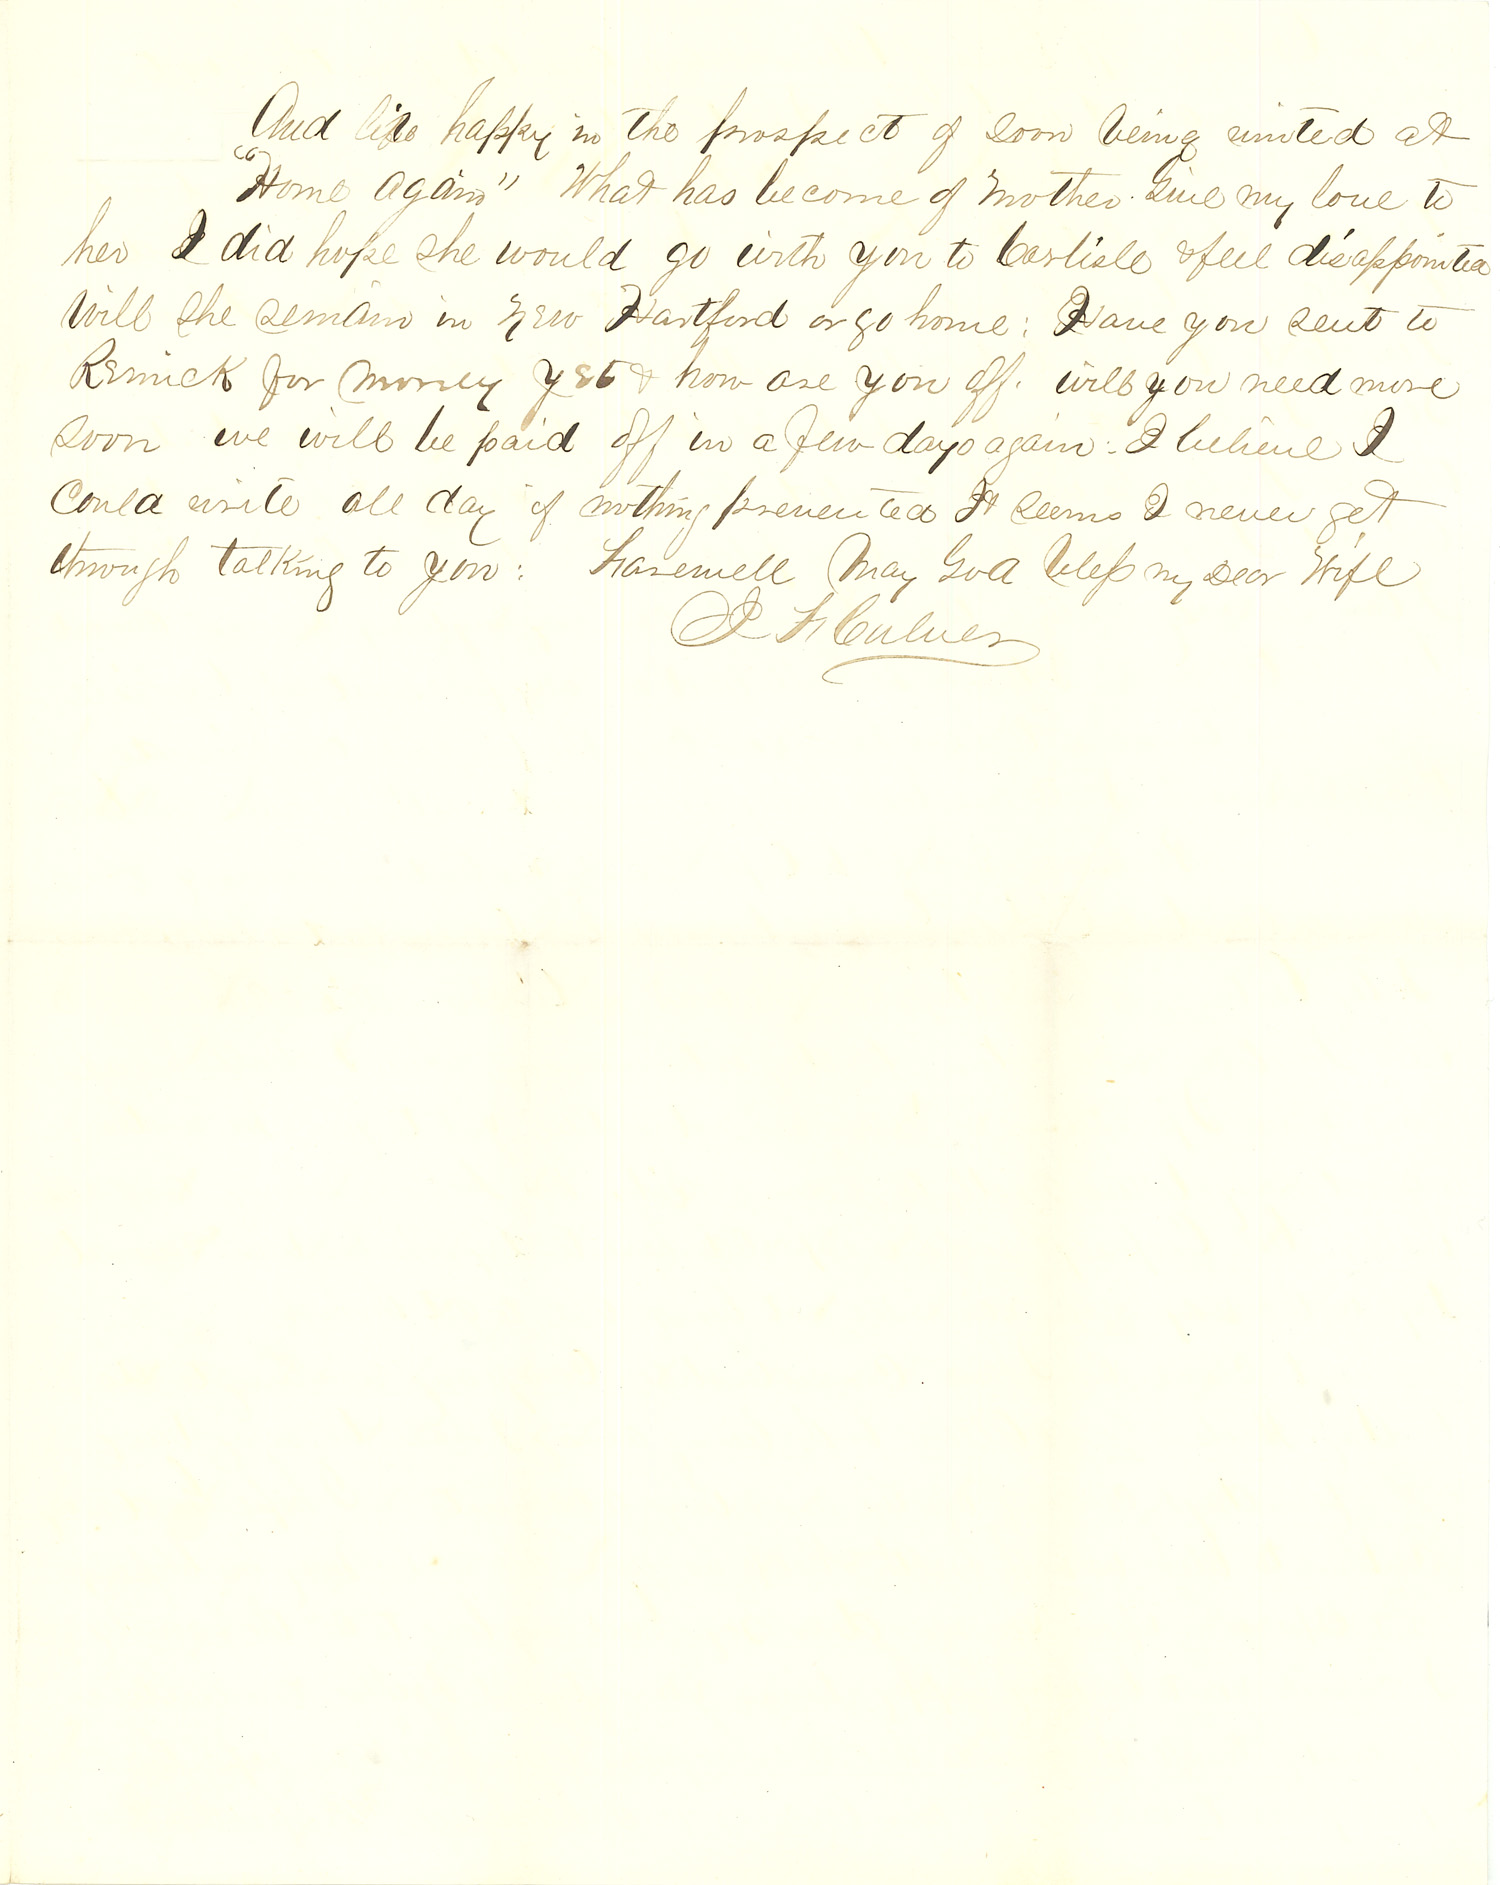 Joseph Culver Letter, August 28, 1863, Letter 2, Page 3